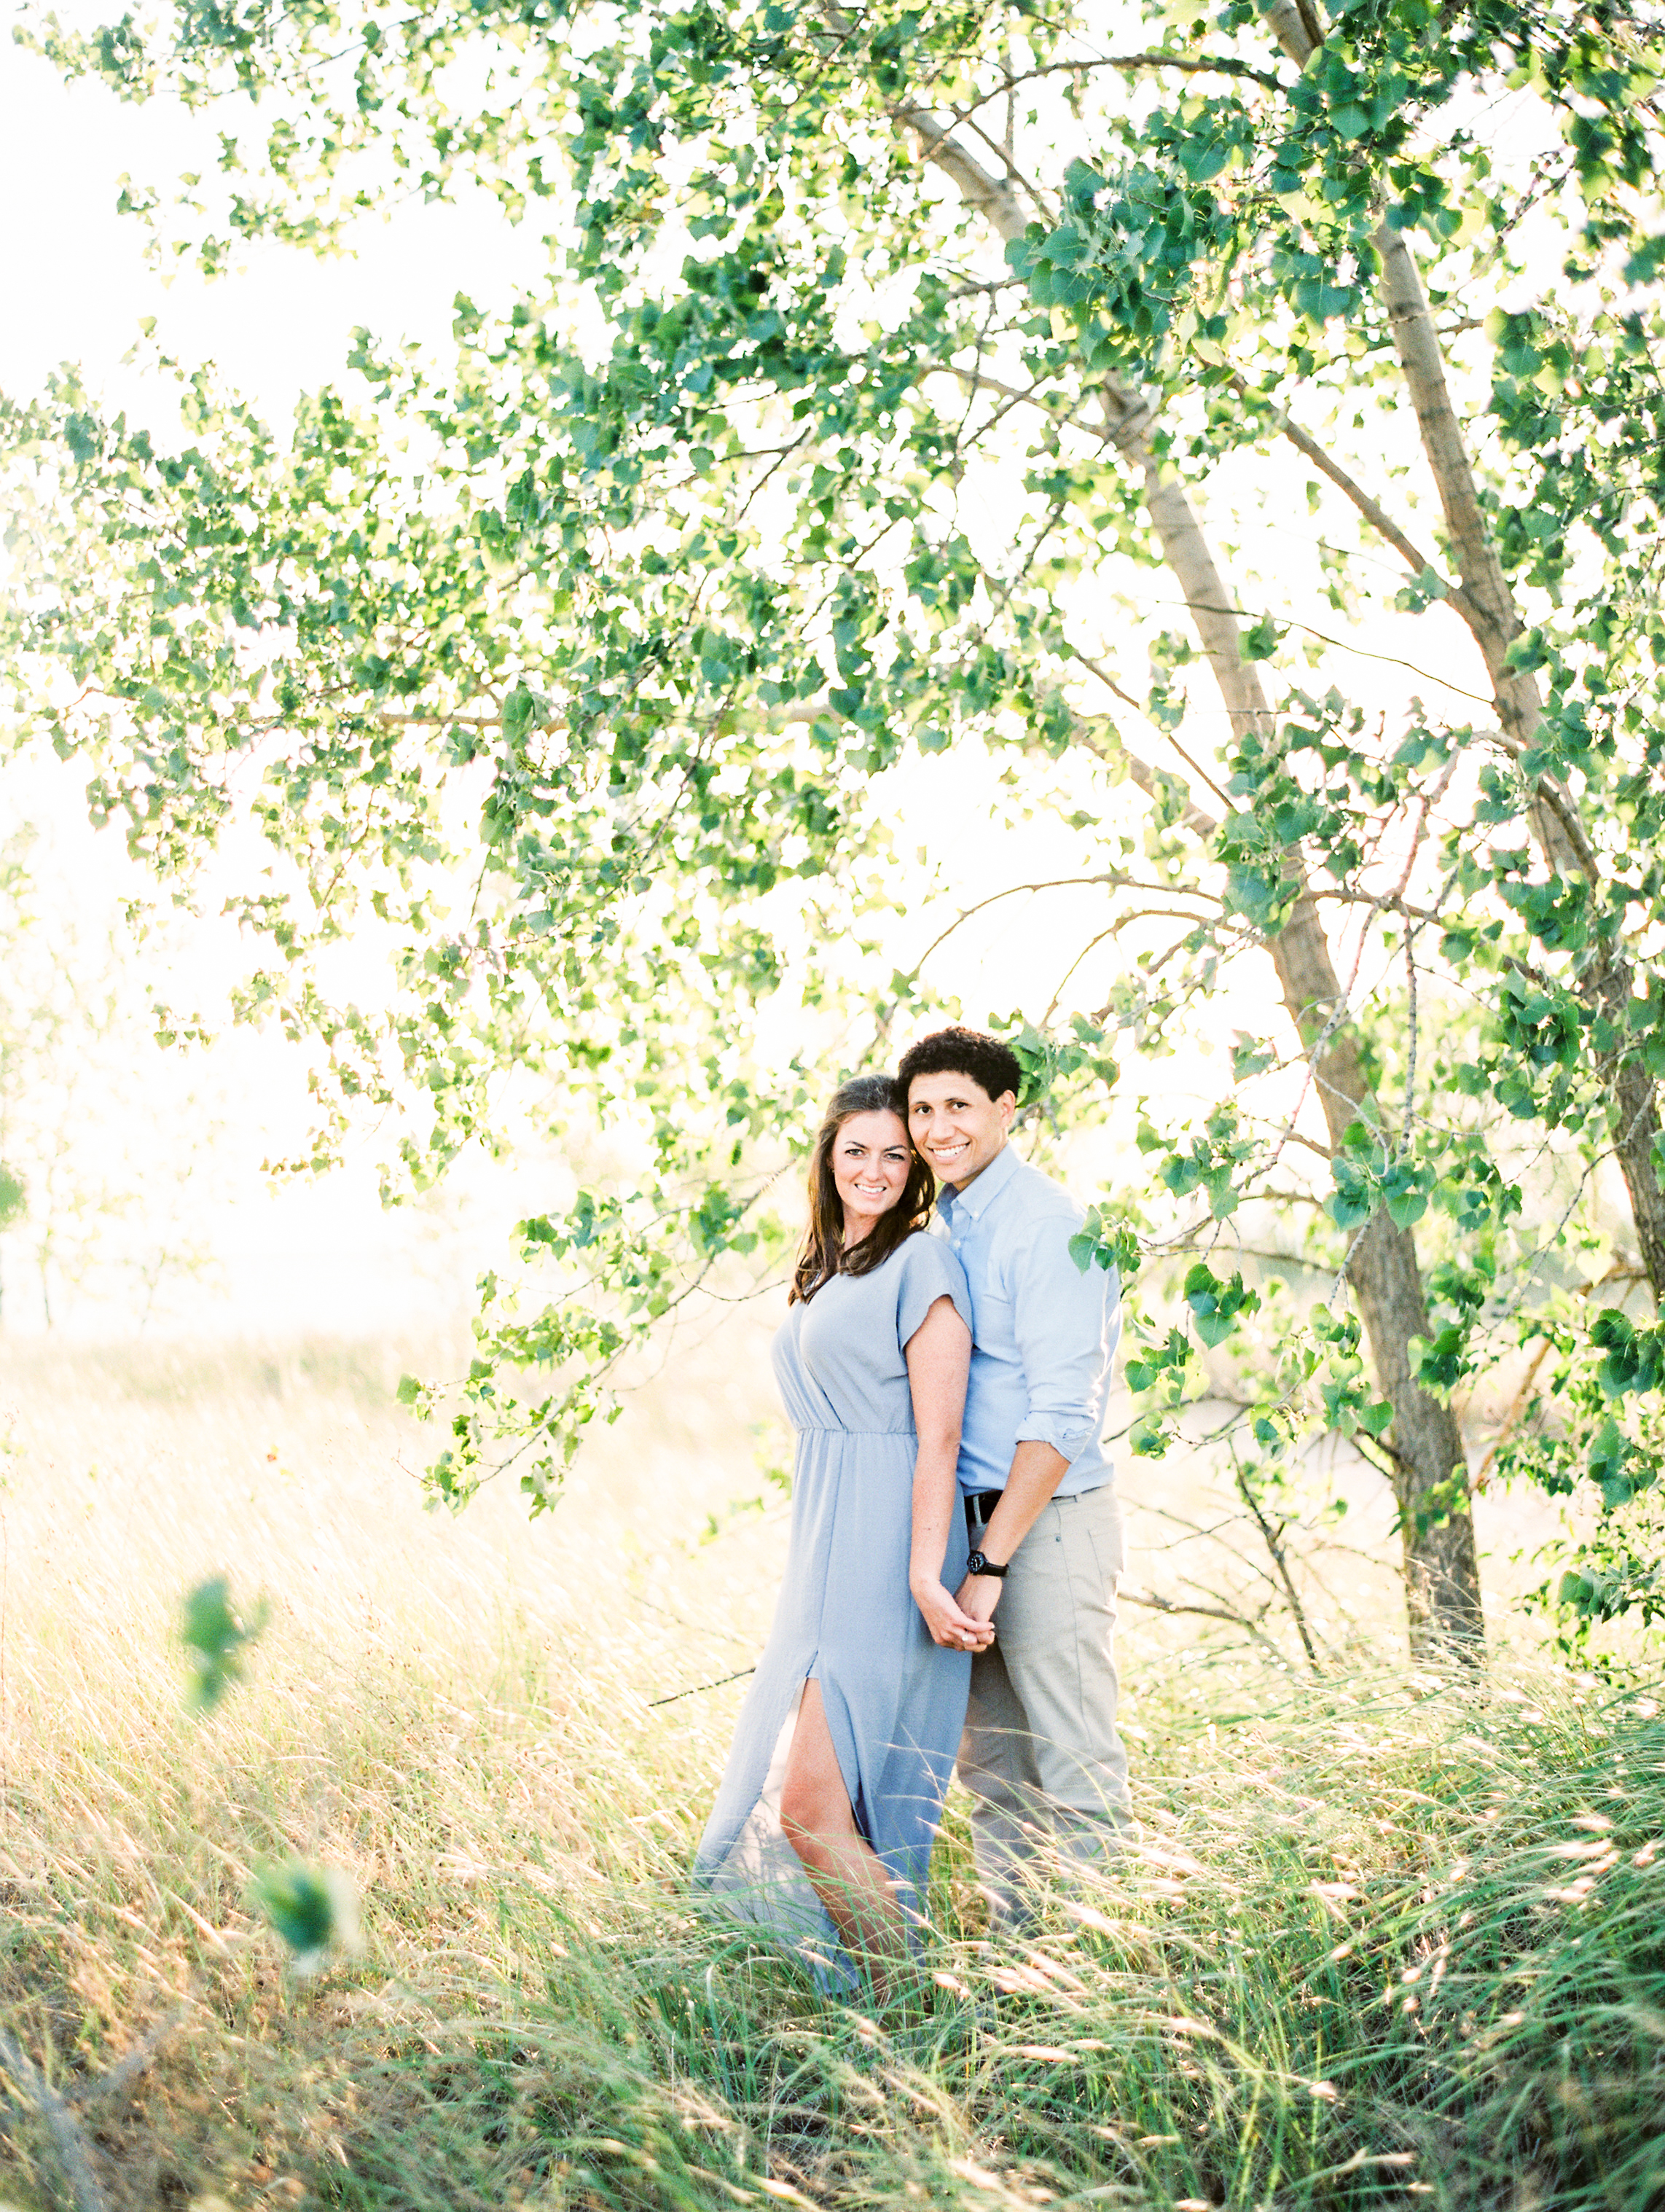 Lucie+Anthony+Engaged-28.jpg